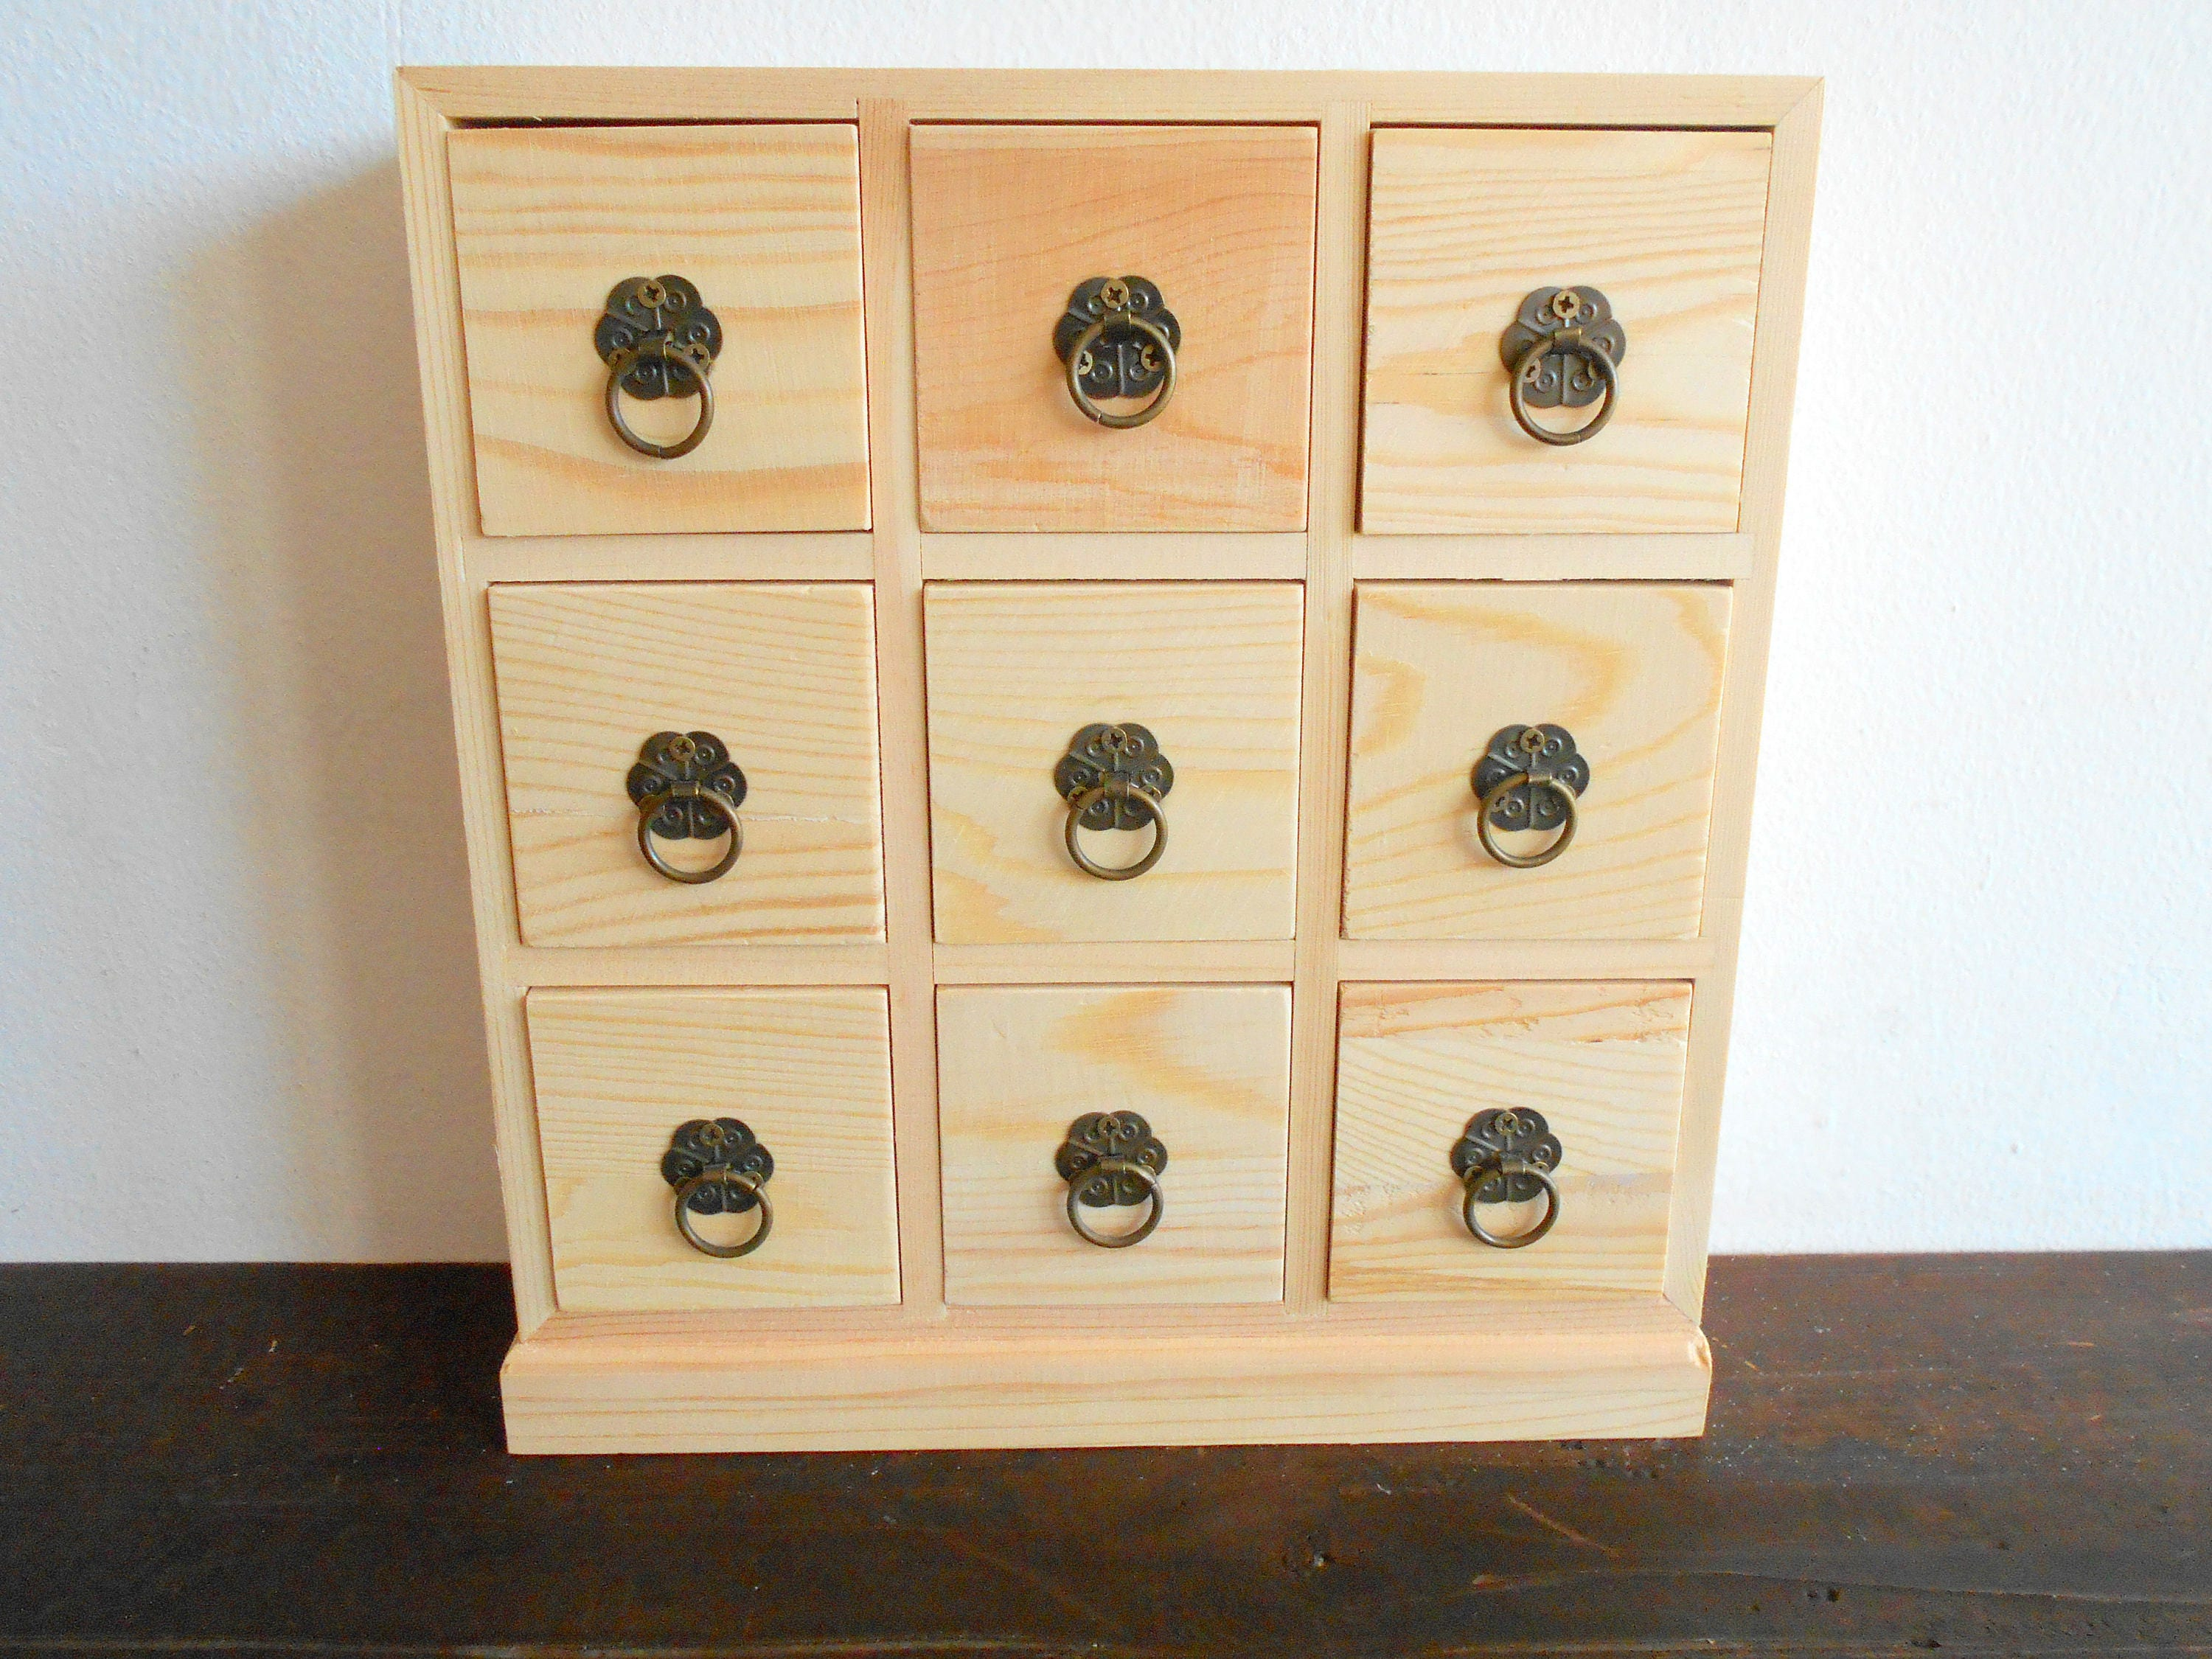 wooden drawers box 9 drawers jewelry chest of drawers. Black Bedroom Furniture Sets. Home Design Ideas